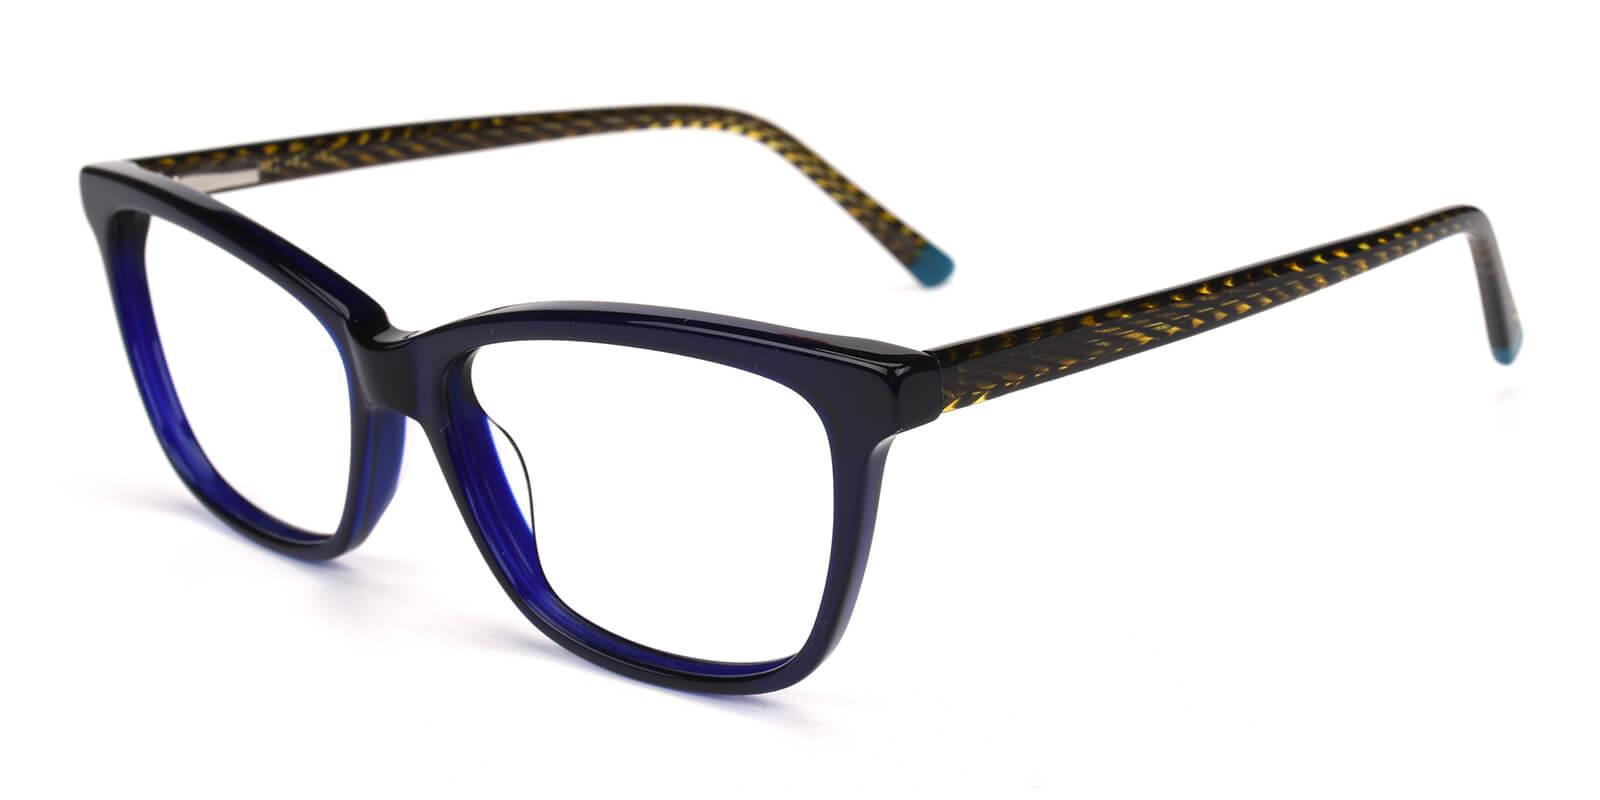 Ezra-Blue-Cat-Acetate-Eyeglasses-additional1